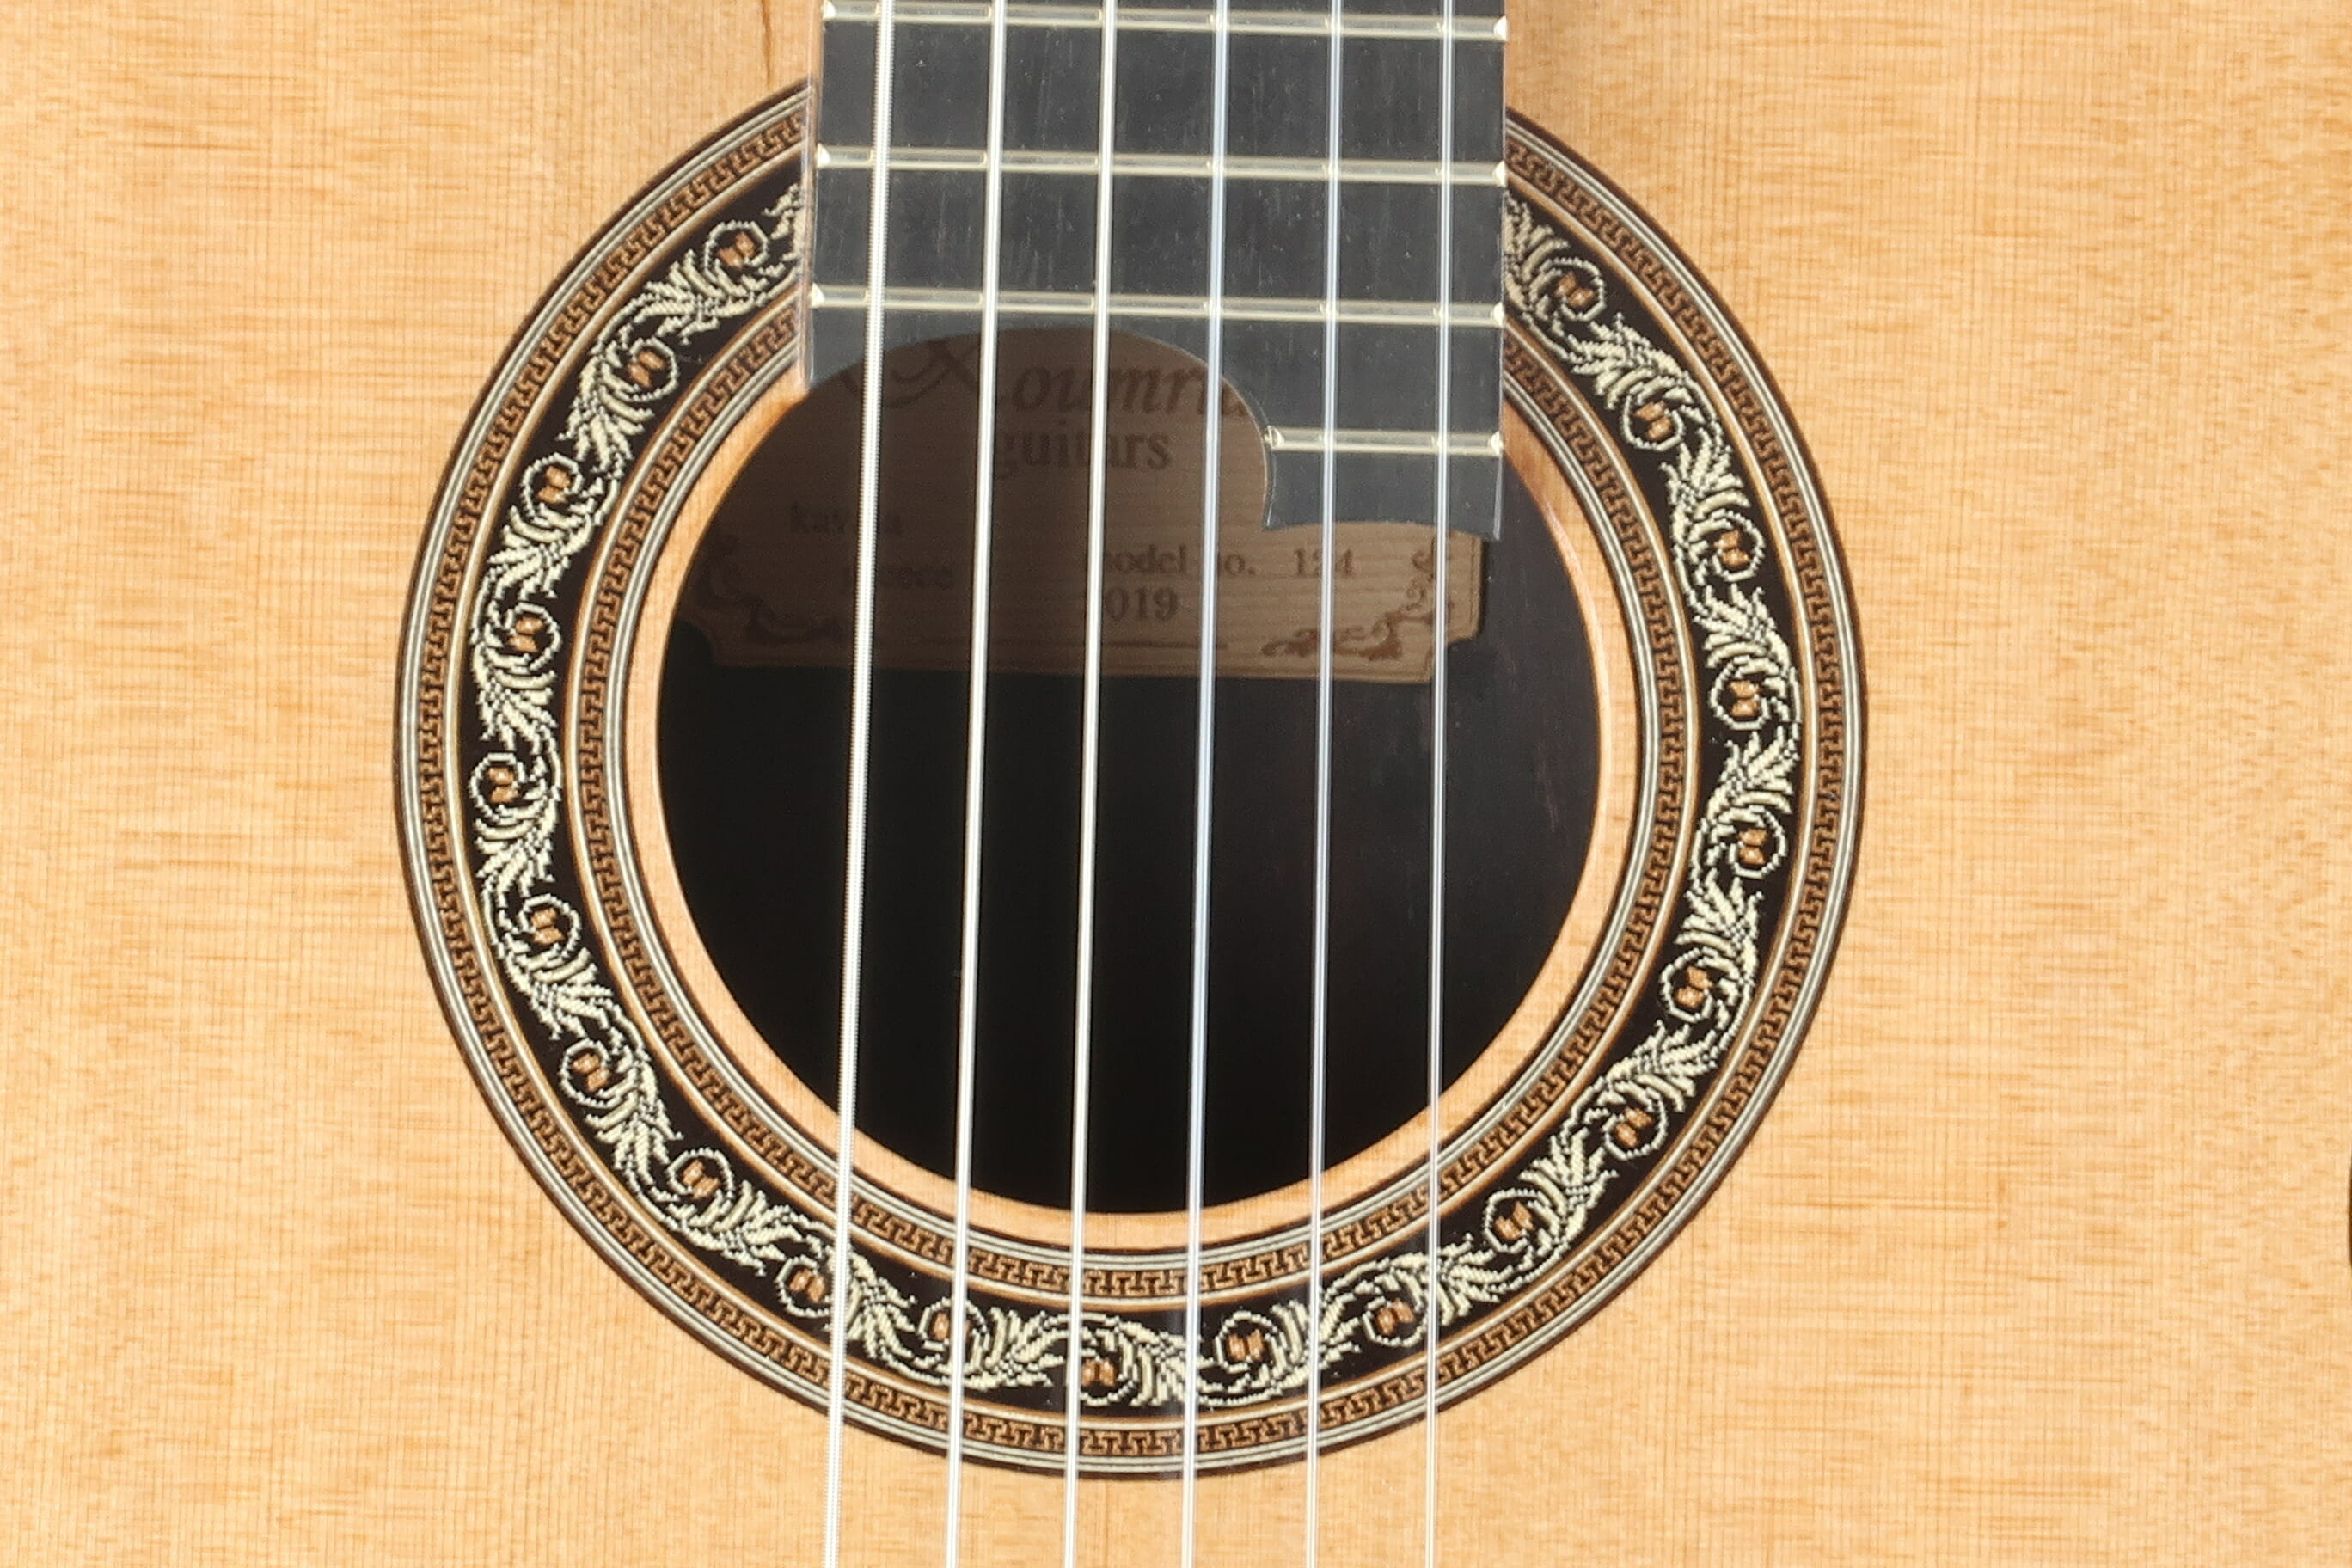 Guitare classique luthier Charalampos Koumridis barrage lattice No 124 19KOU124-09